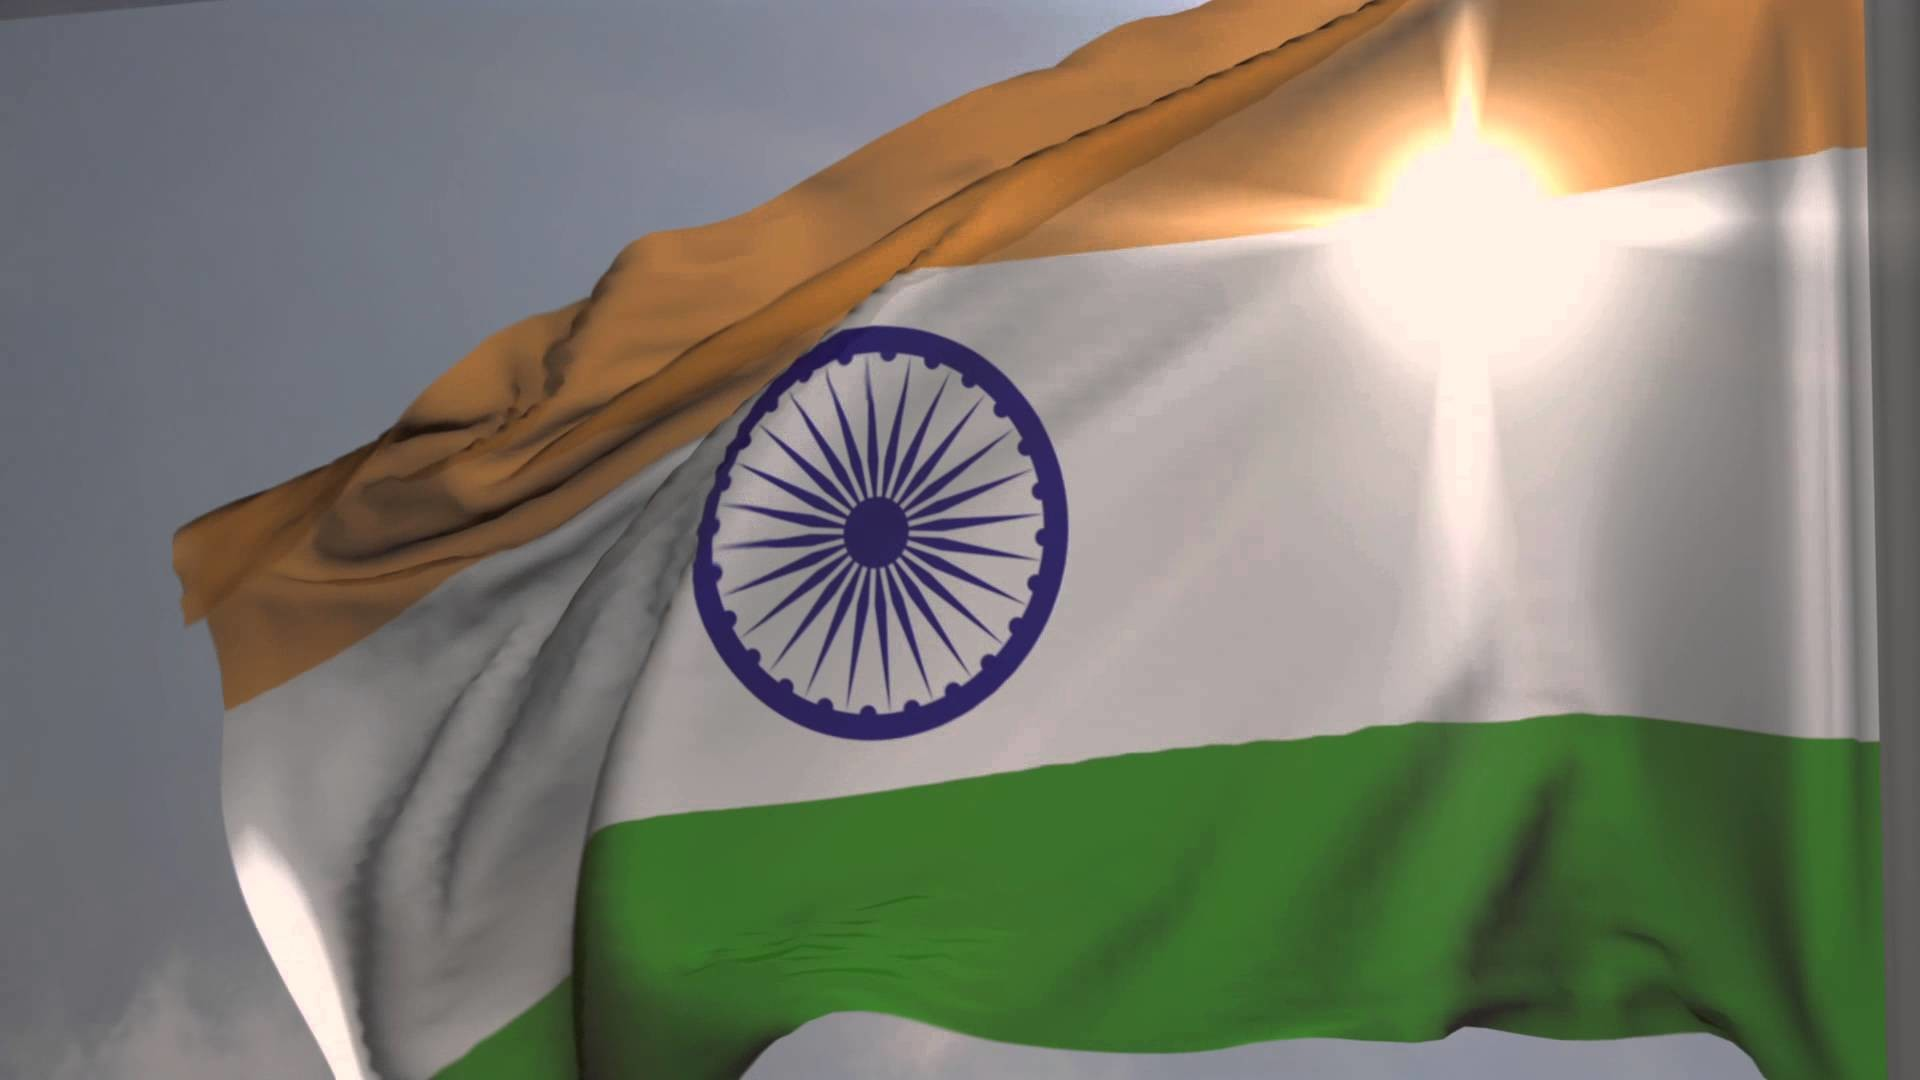 For Indian Flag Hd Animation: Indian Flag Mobile Wallpapers 2018 (77+ Background Pictures